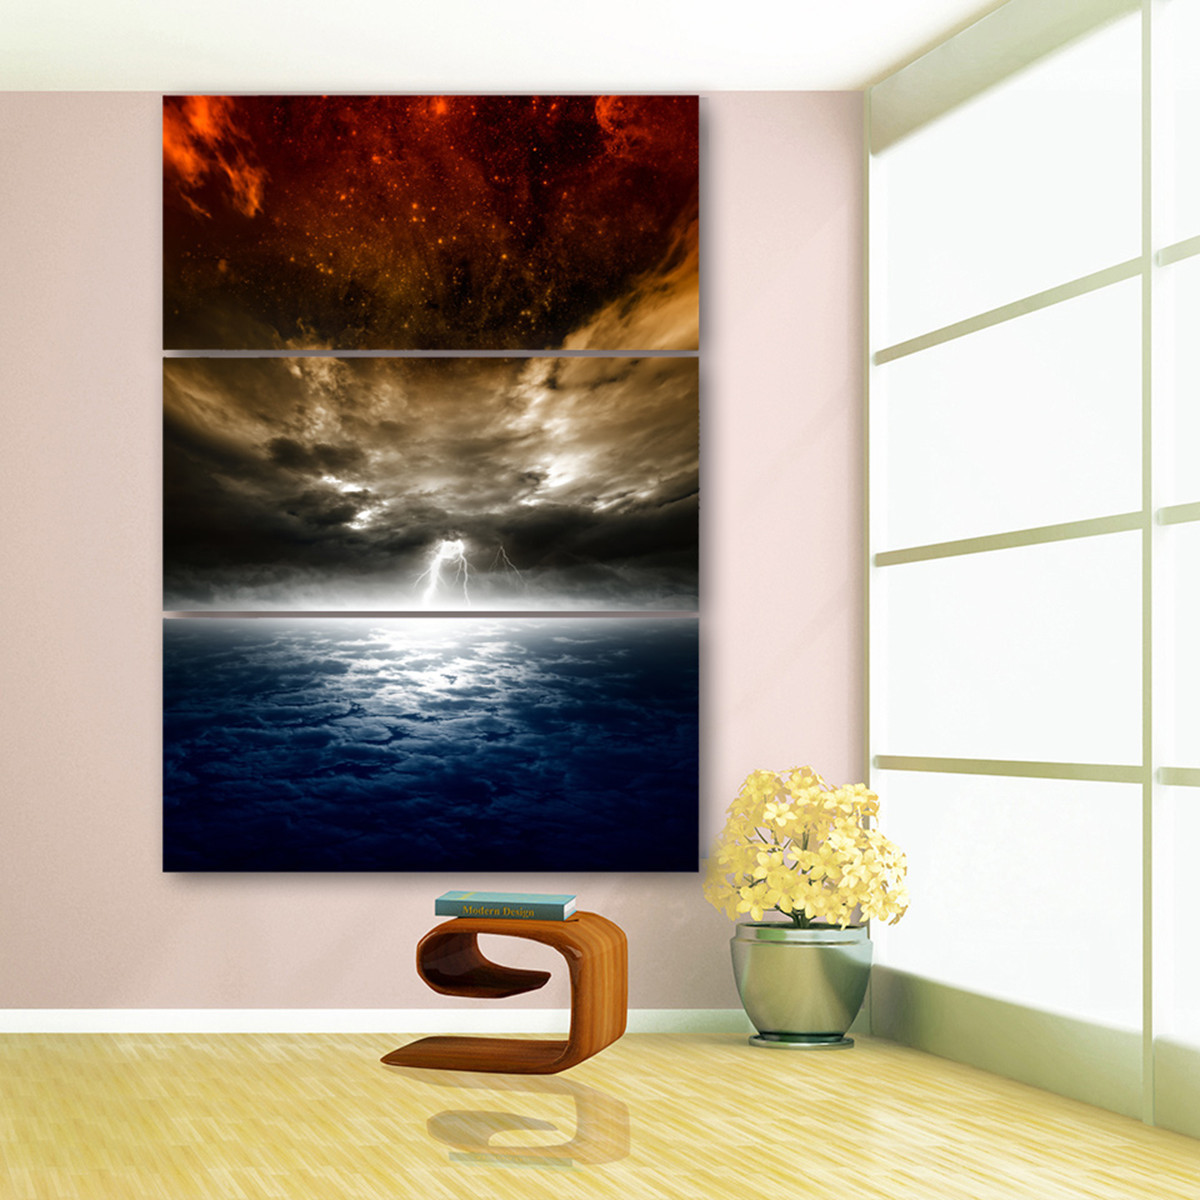 Lighted Pictures Wall Decor compare prices on lighted canvas wall art- online shopping/buy low